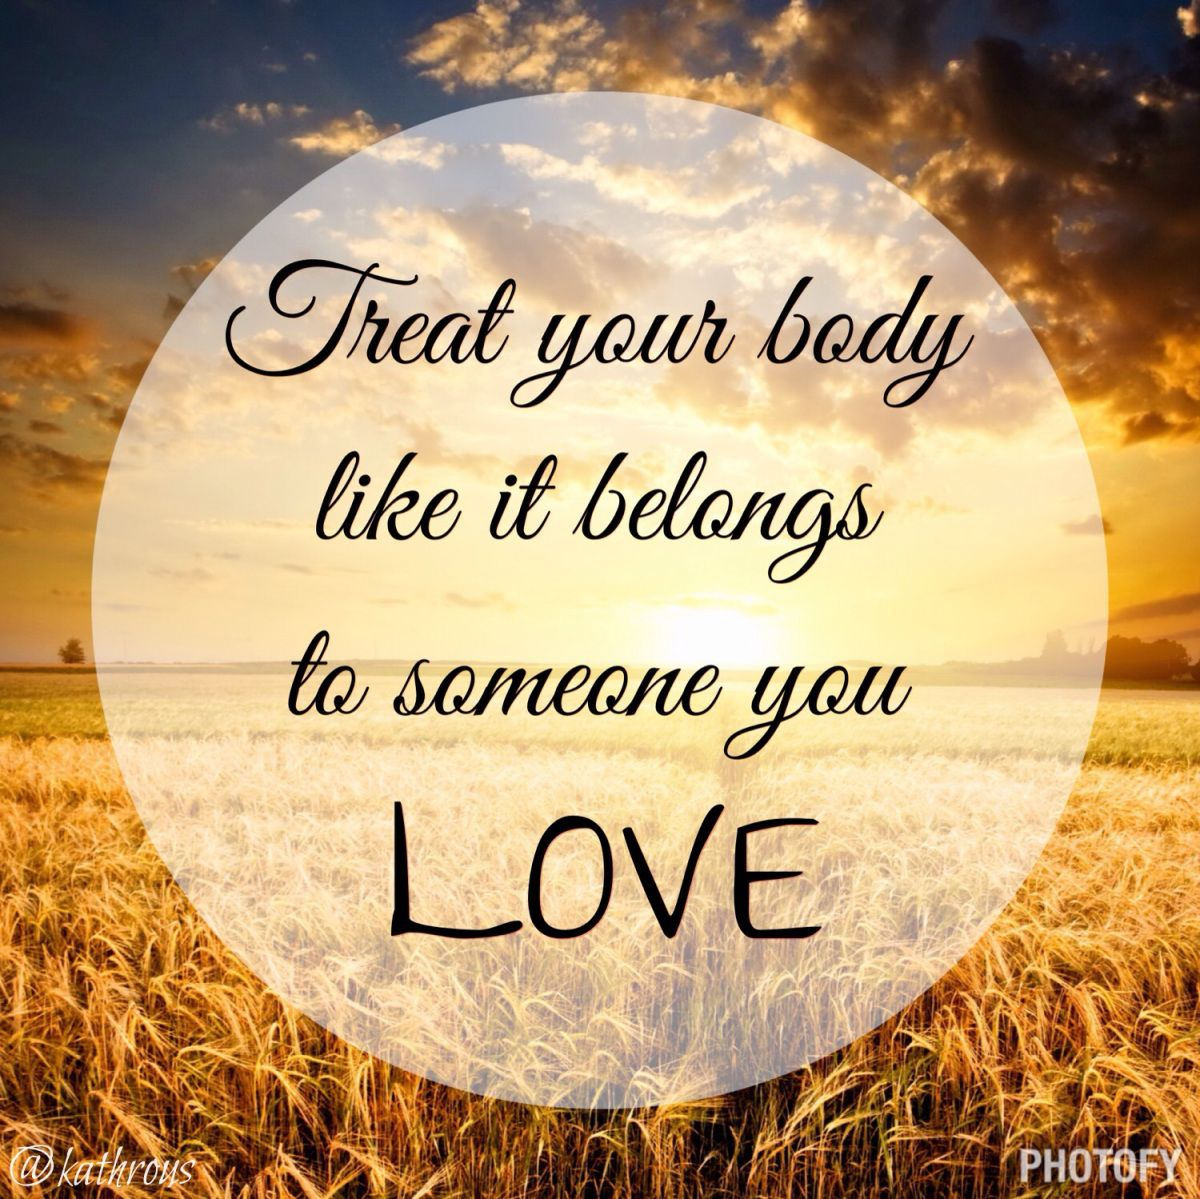 Inspirational Quotes For Someone You Love: Treat Your Body Like It Belongs To Someone You Love